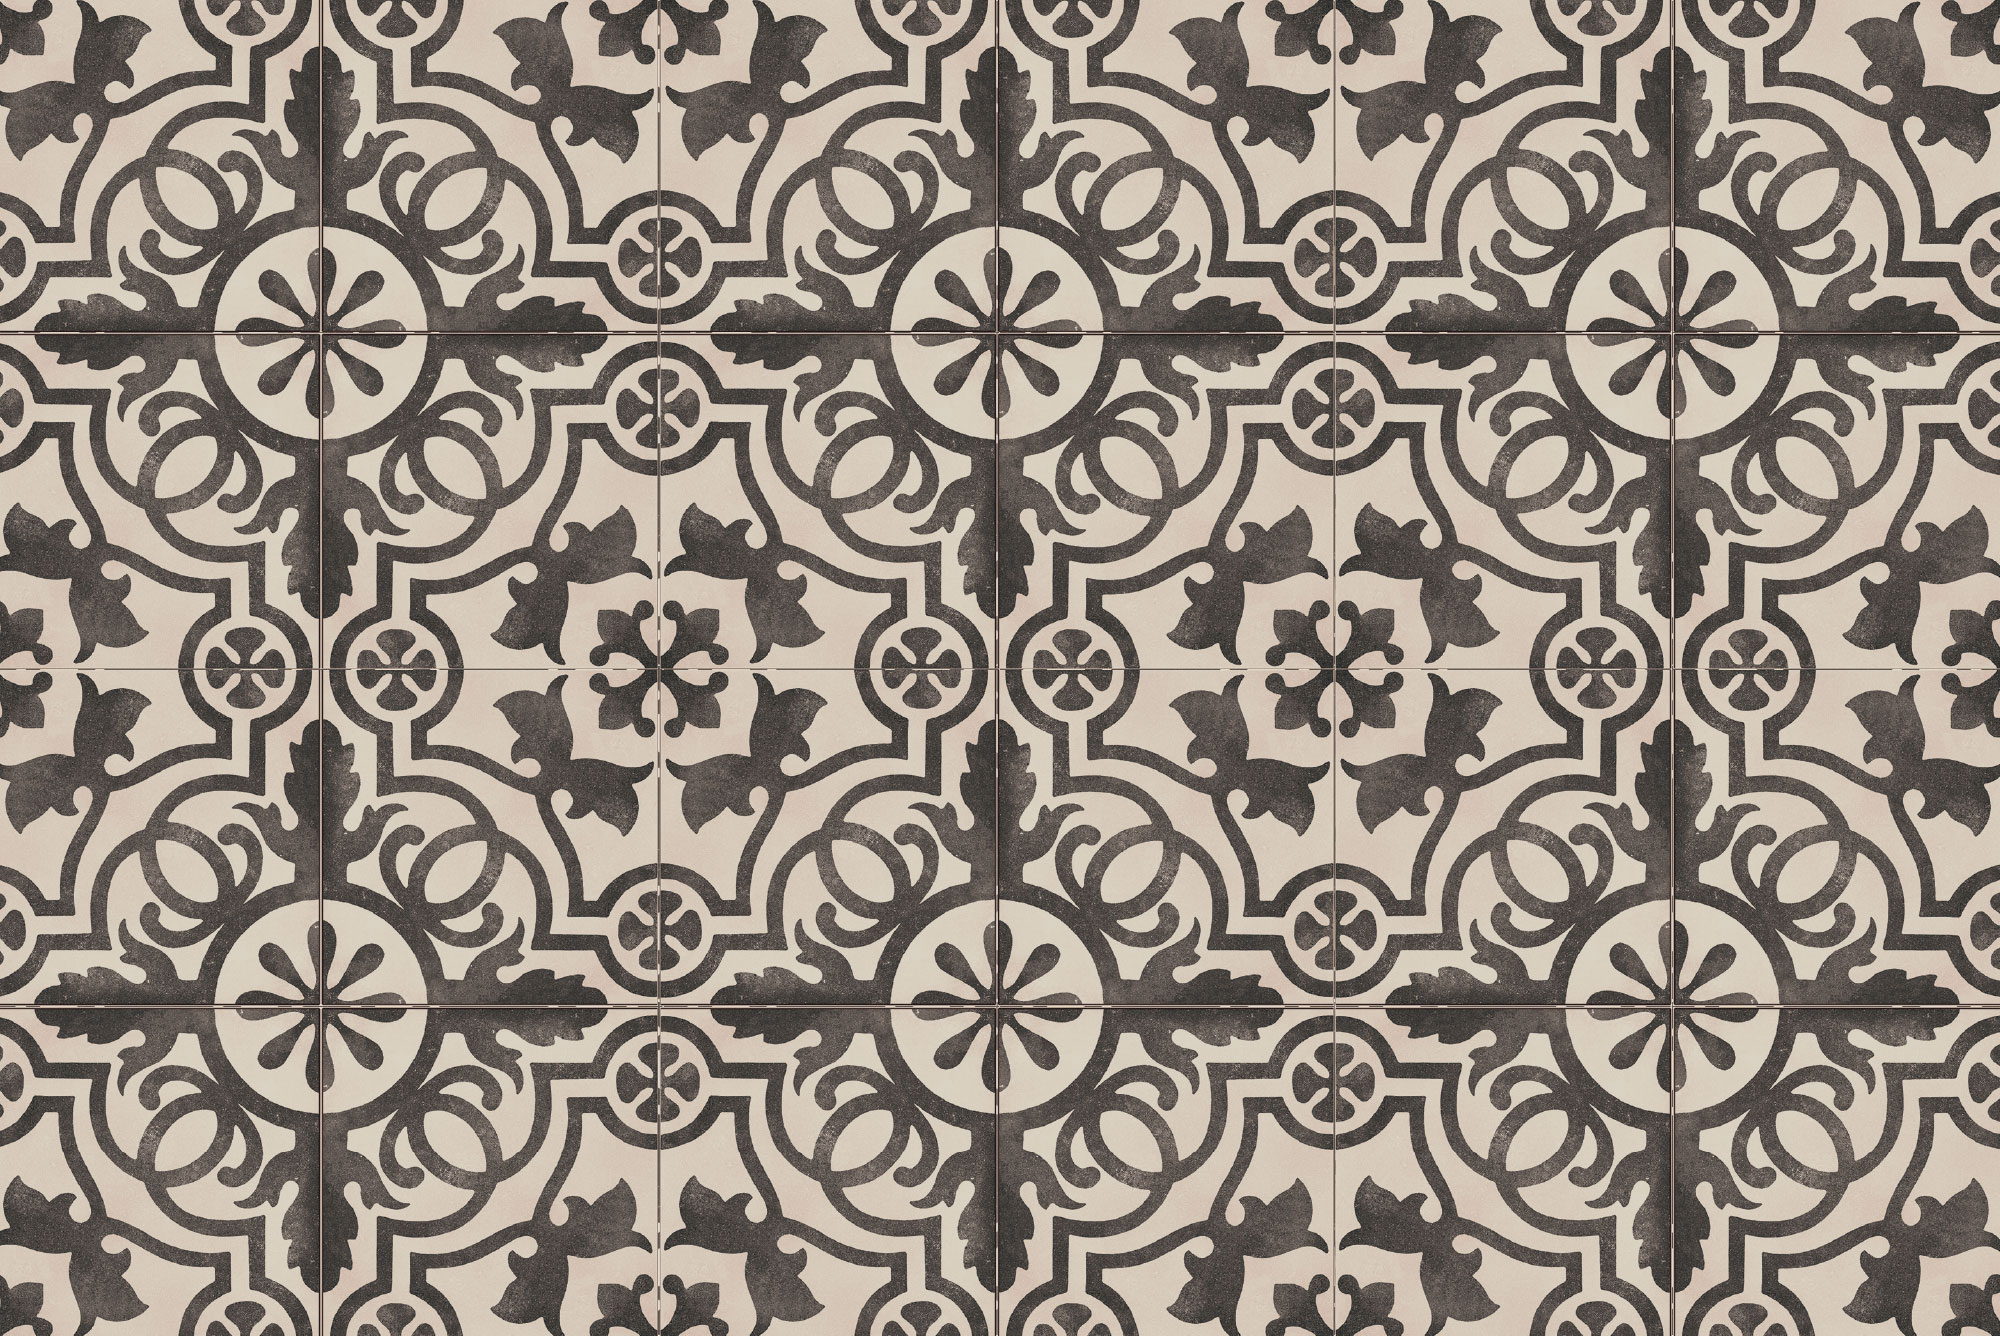 Design Evo Tiles Elios Design Evo Italian Porcelain Tile